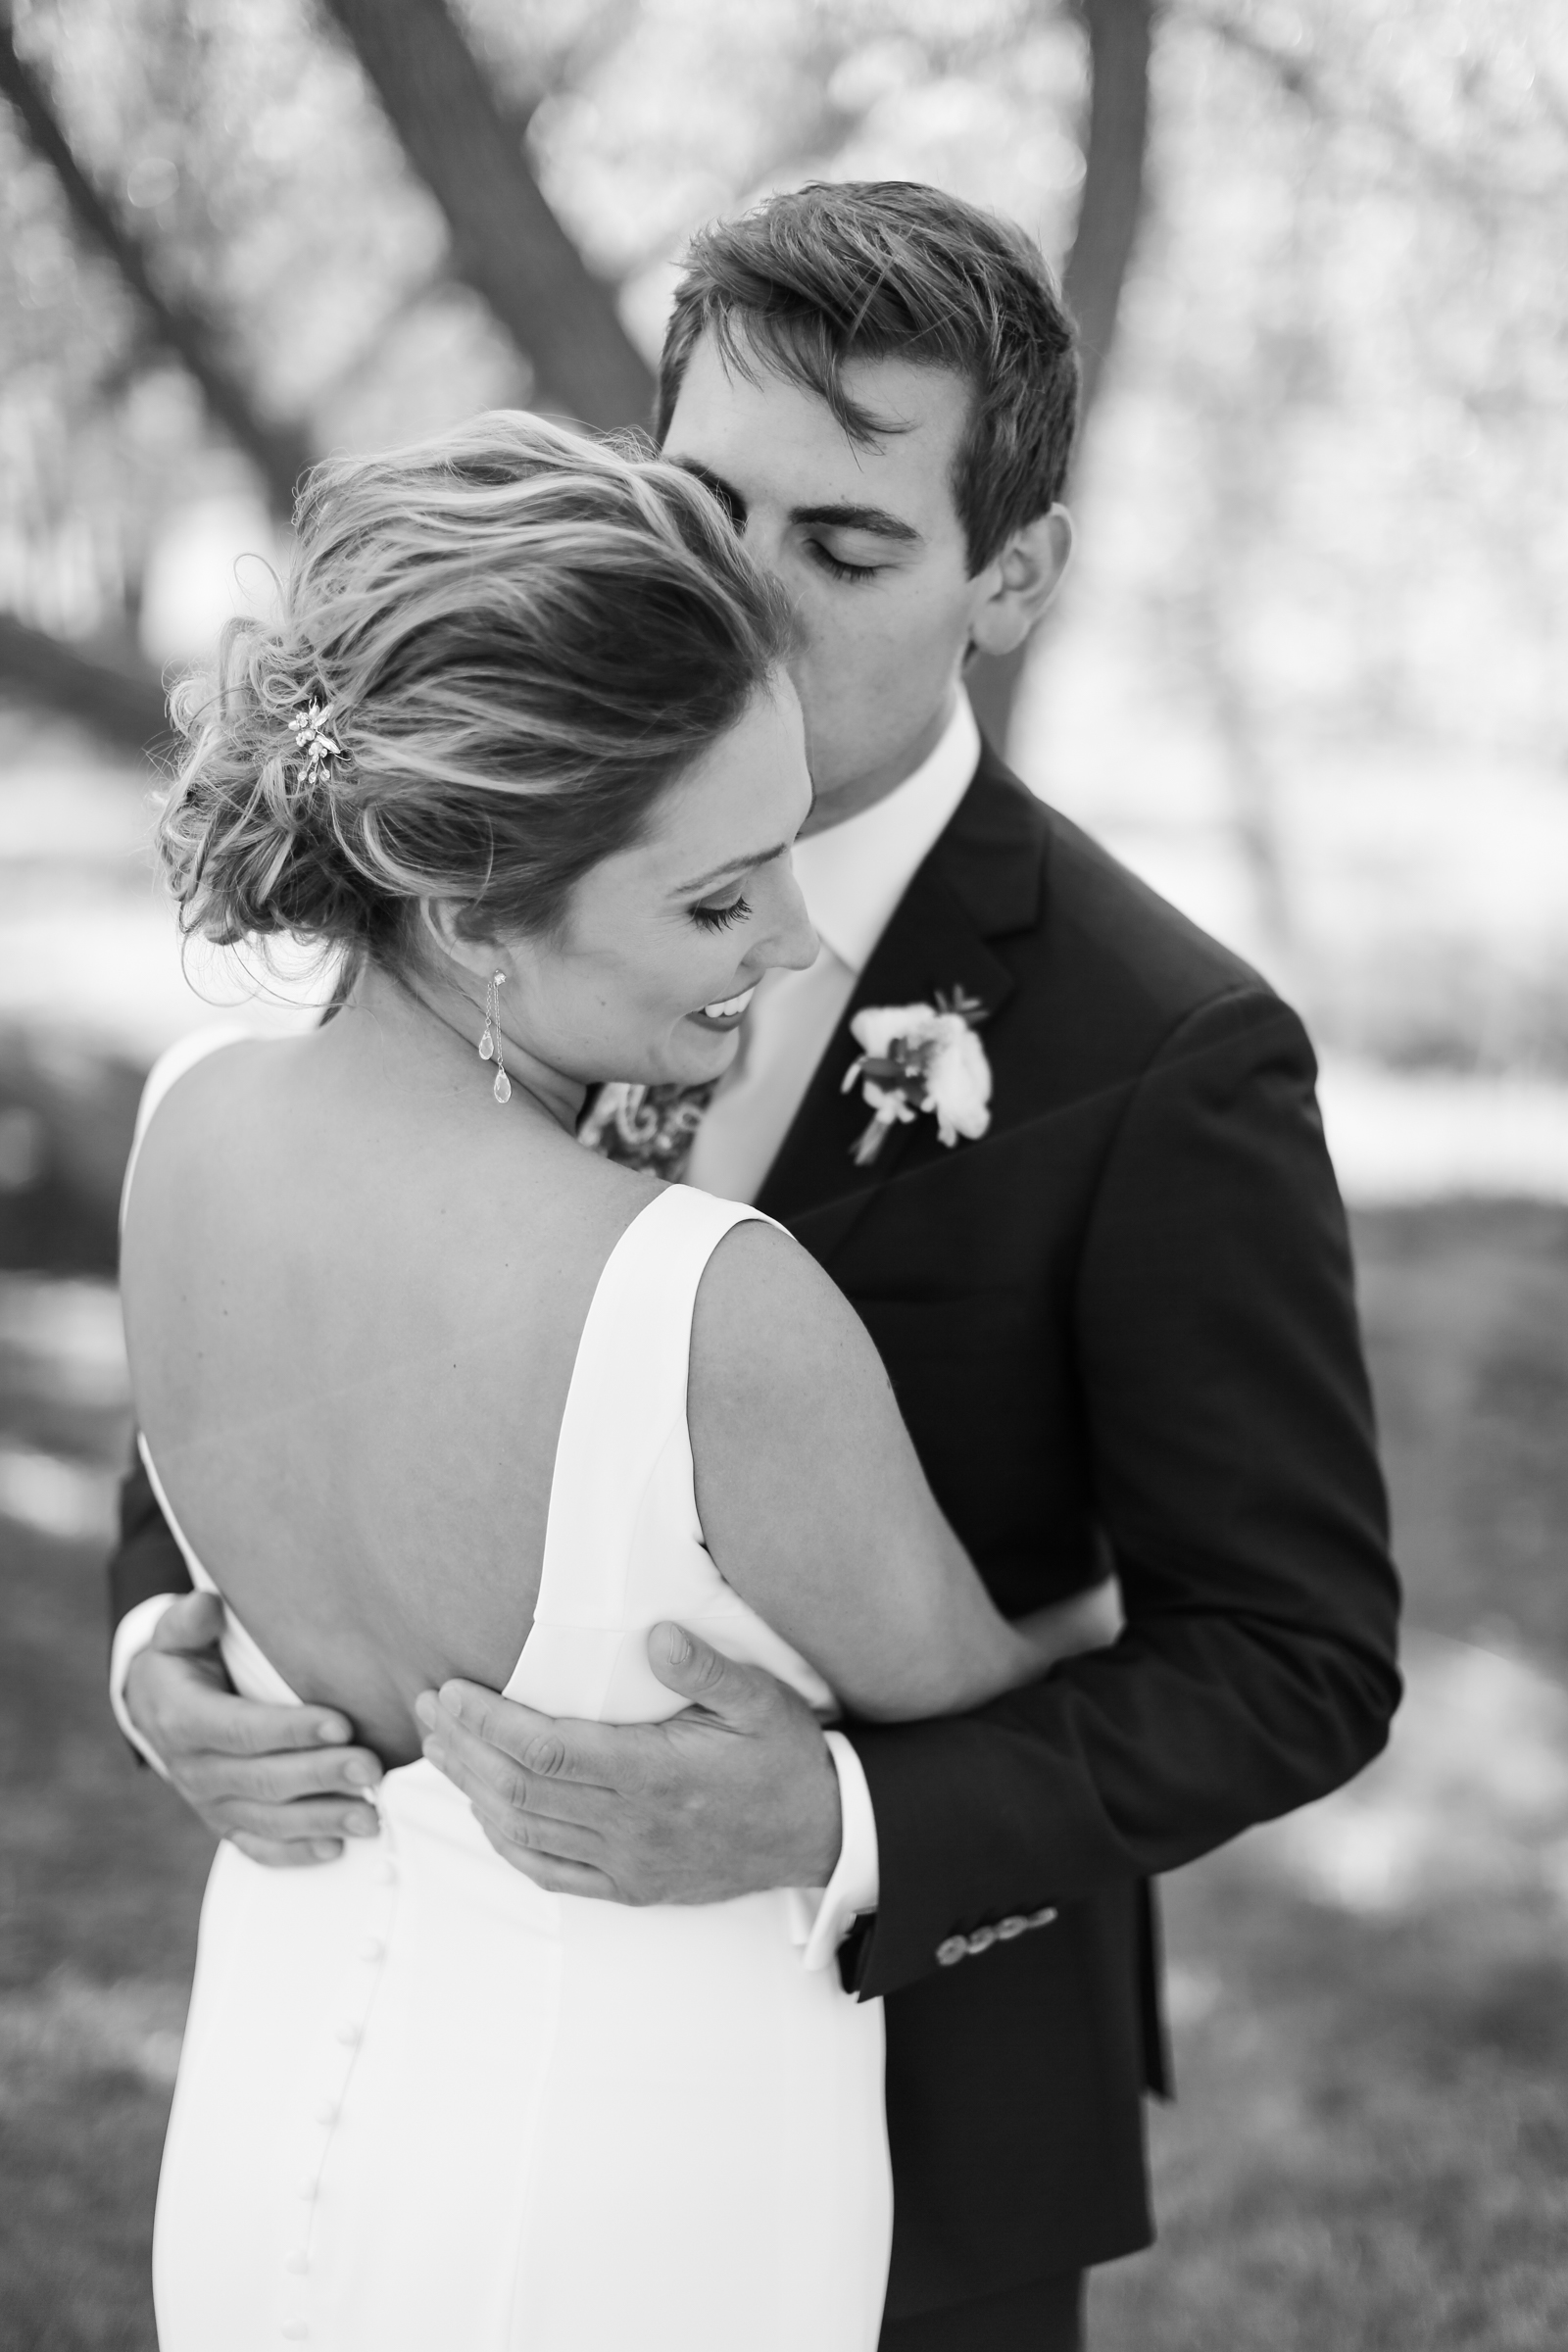 Kailee+Patrick-Wedding-38.jpg